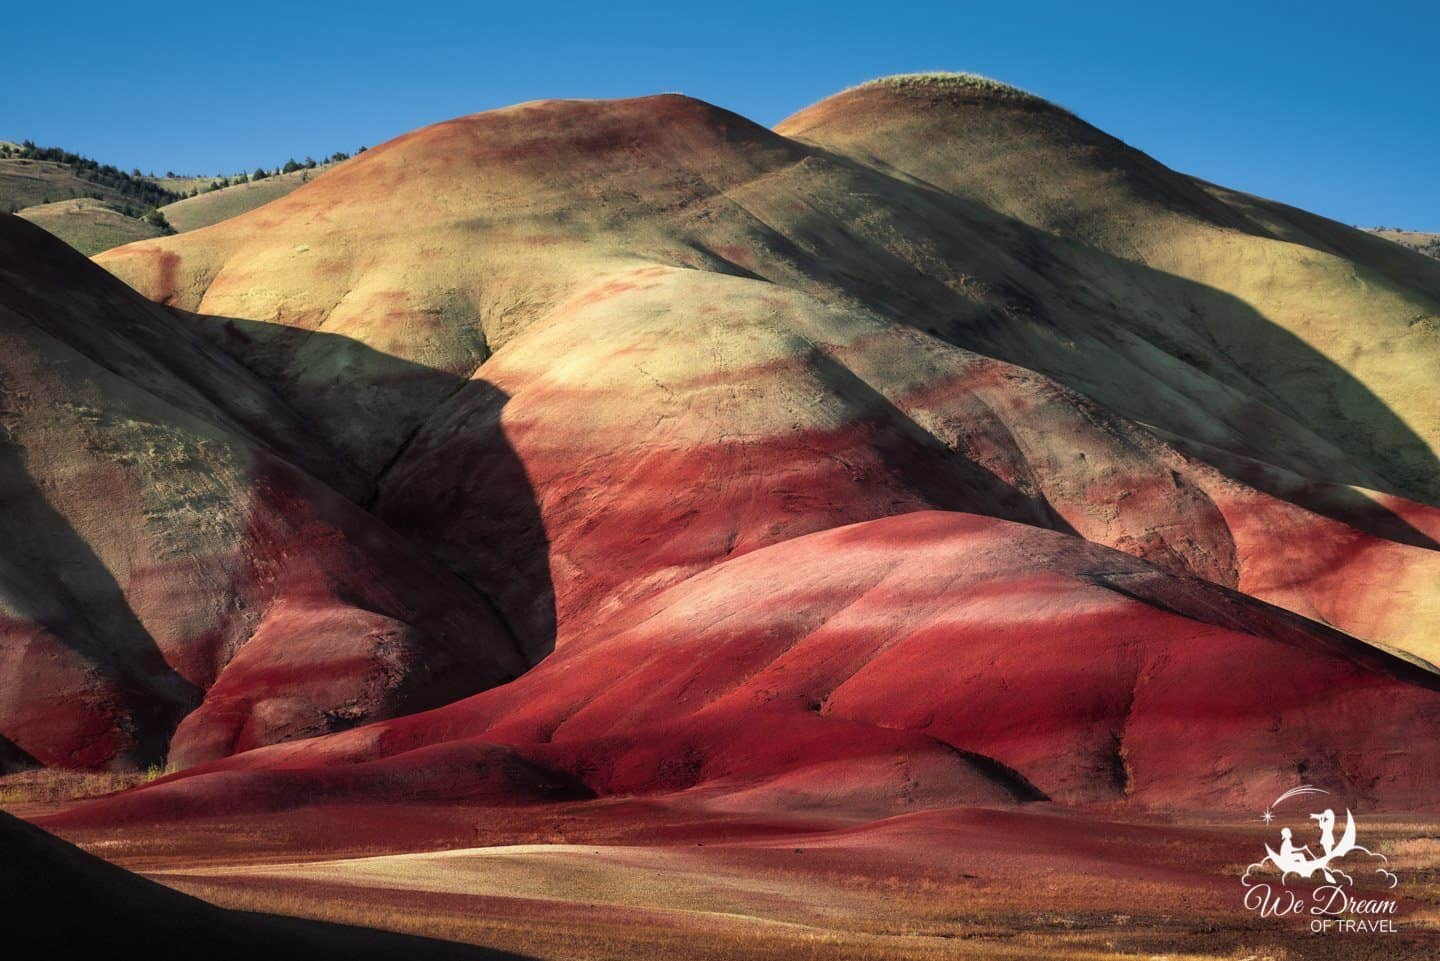 Sunrise photography from the Painted HIlls